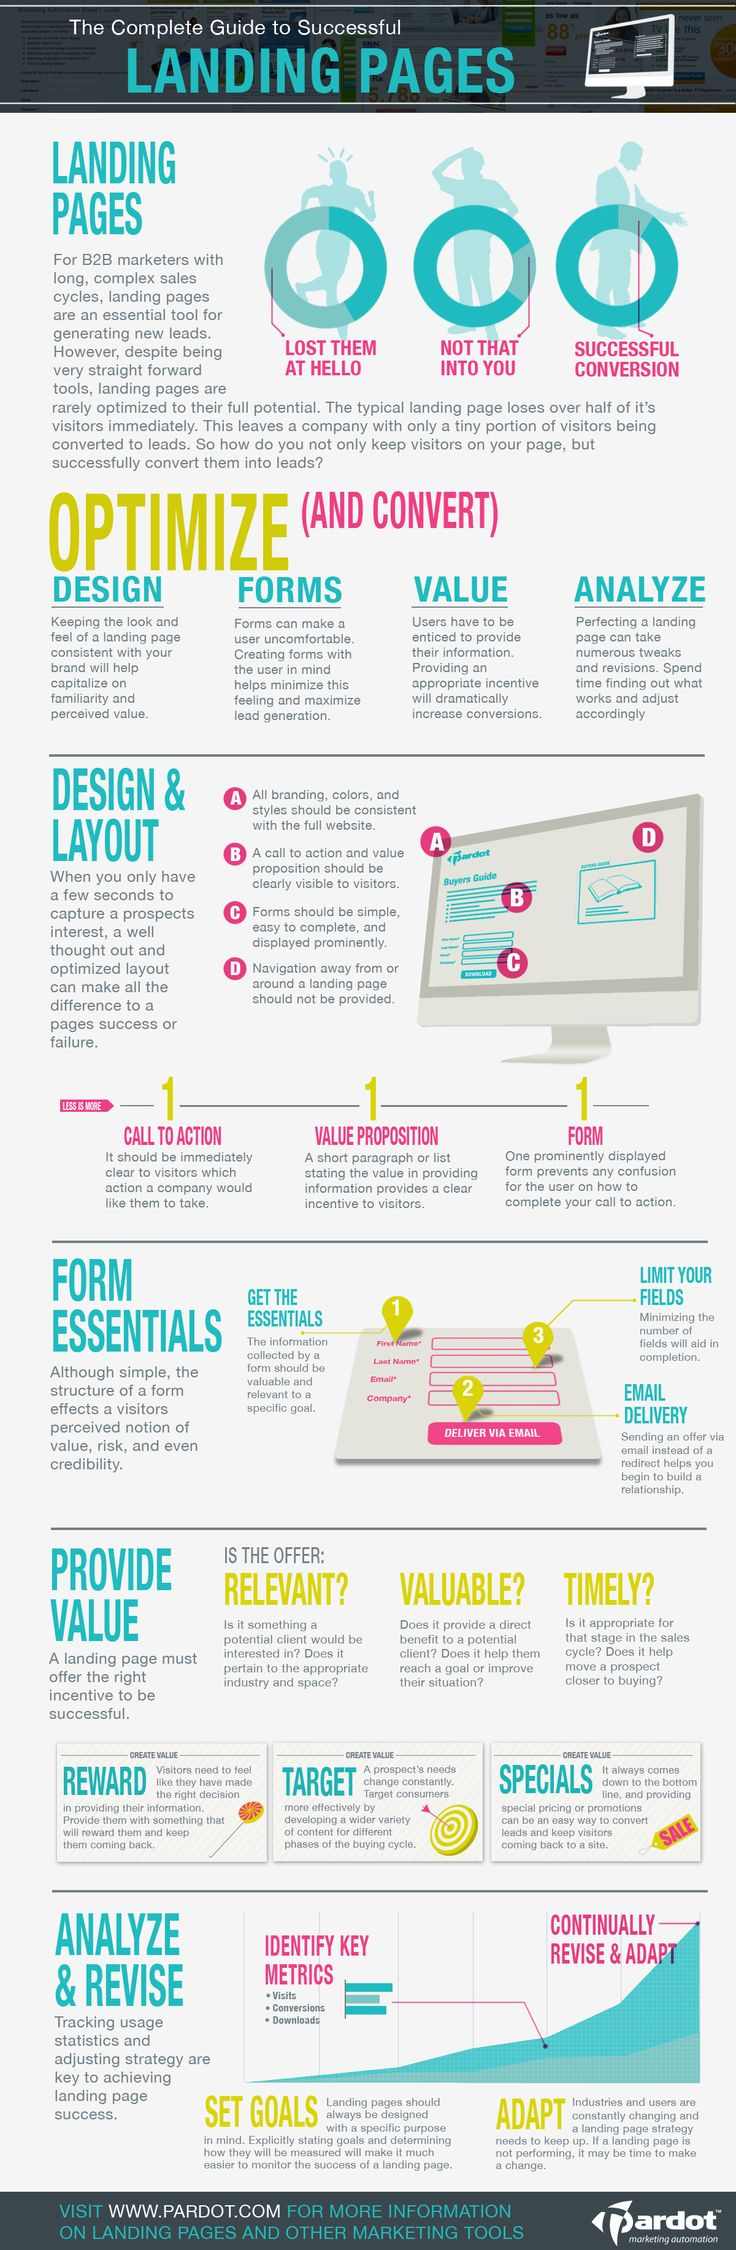 The Complete Guide to Successful Landing Pages [Infographic] - How To Make A Great Landing Page For Your Business Website | #digitalmarketing #inboundmarketing #emailmarketing